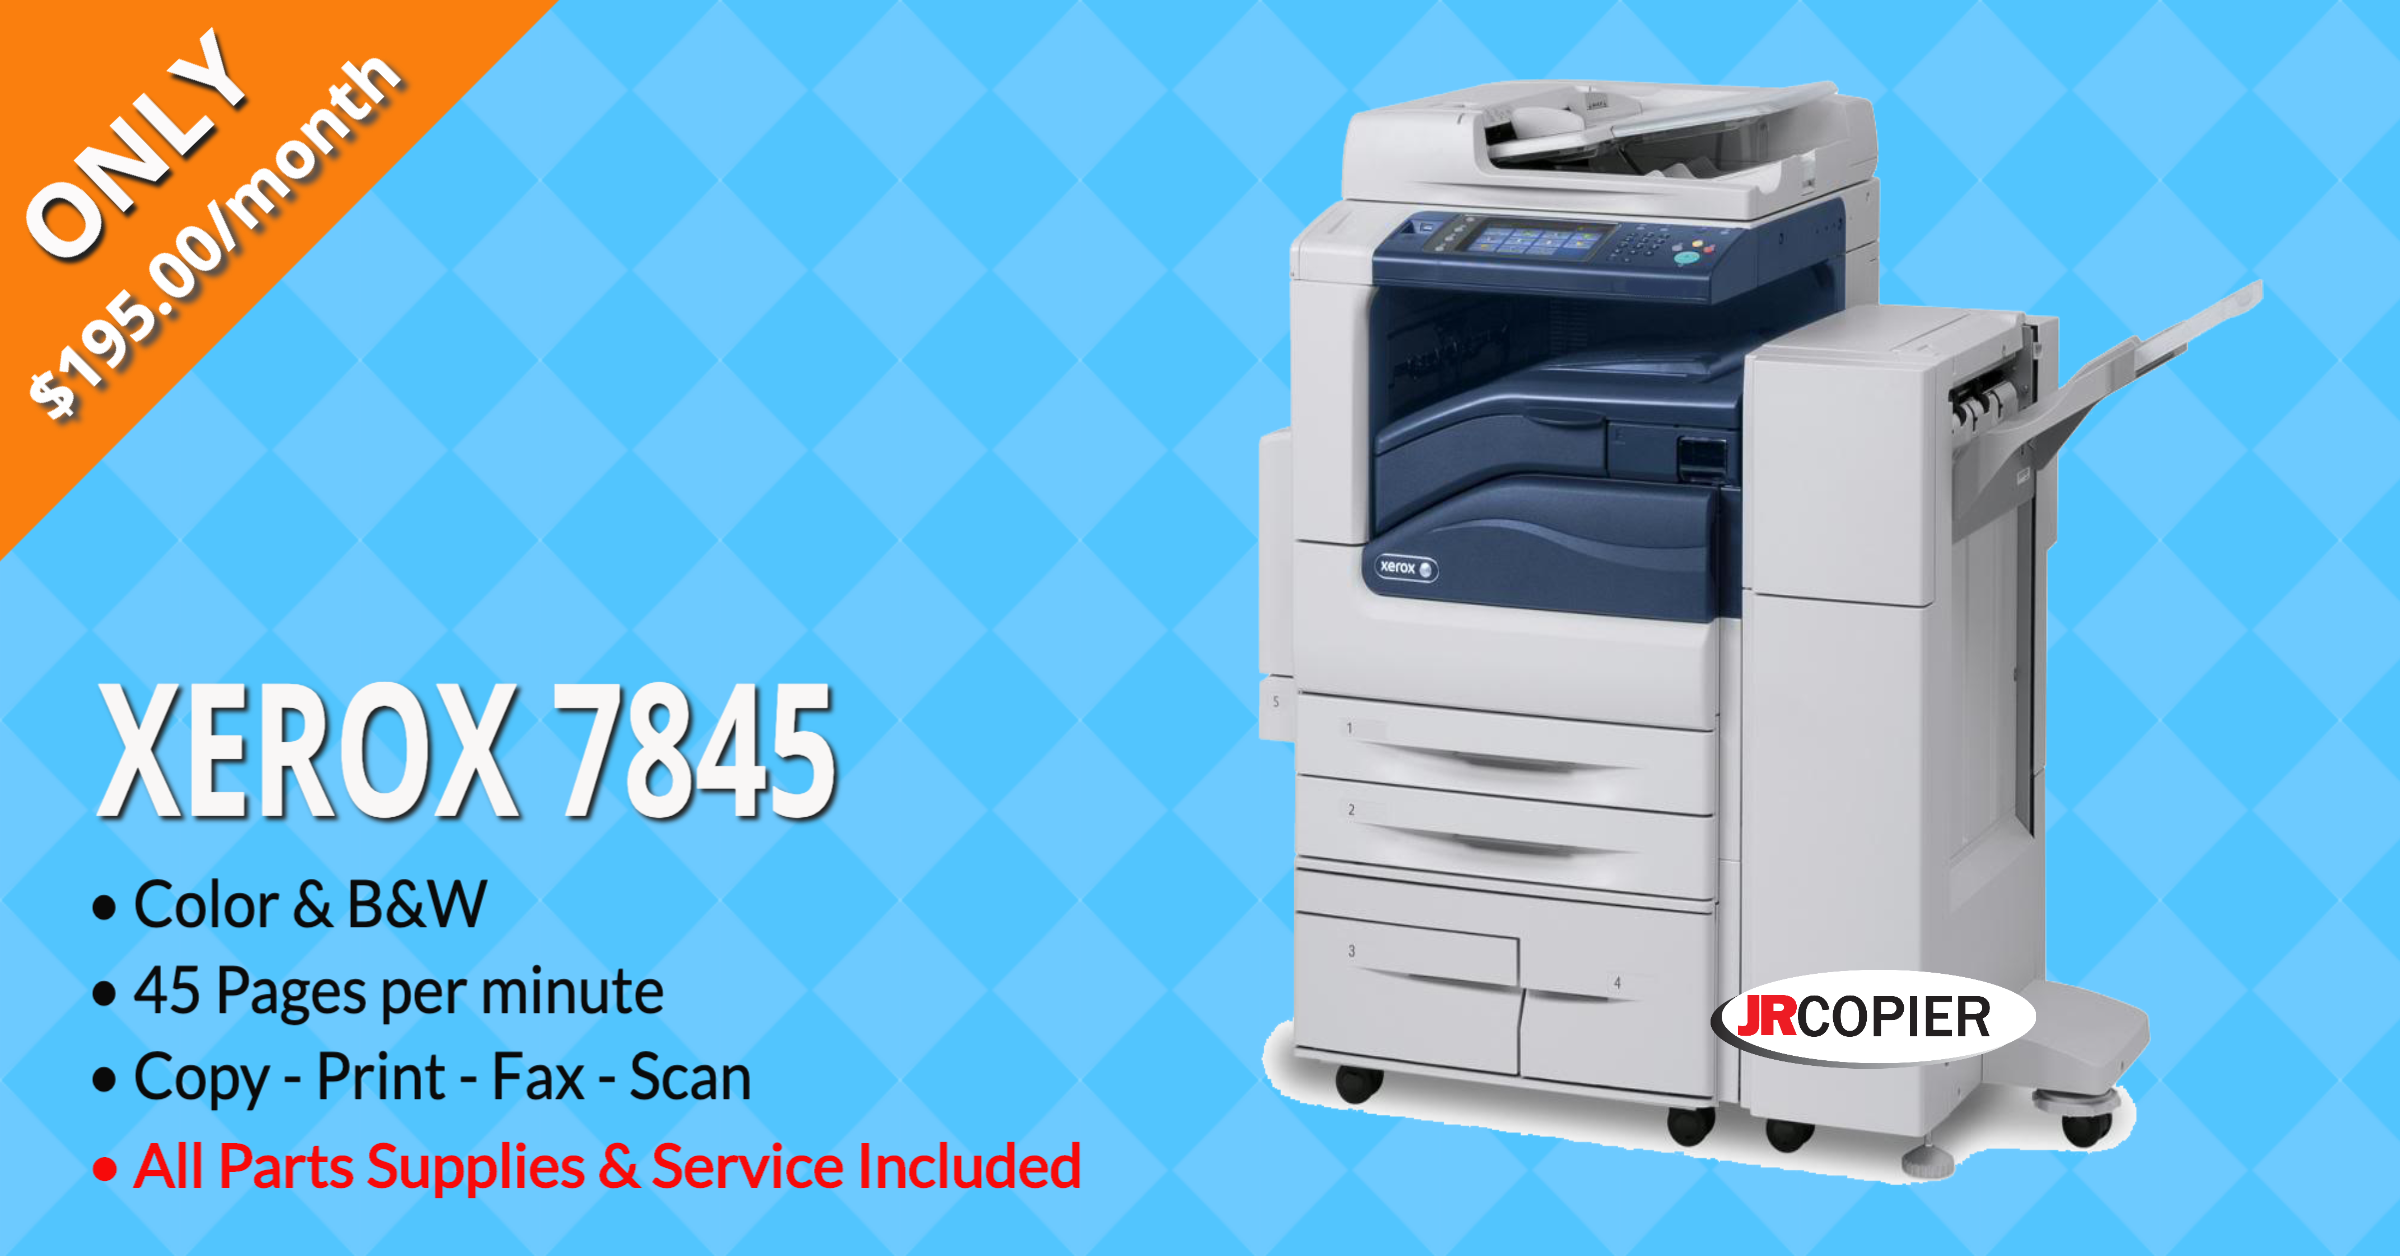 Printer Rental Services 27215, 27216, 27217, 27220, 27244, 27253, 27377